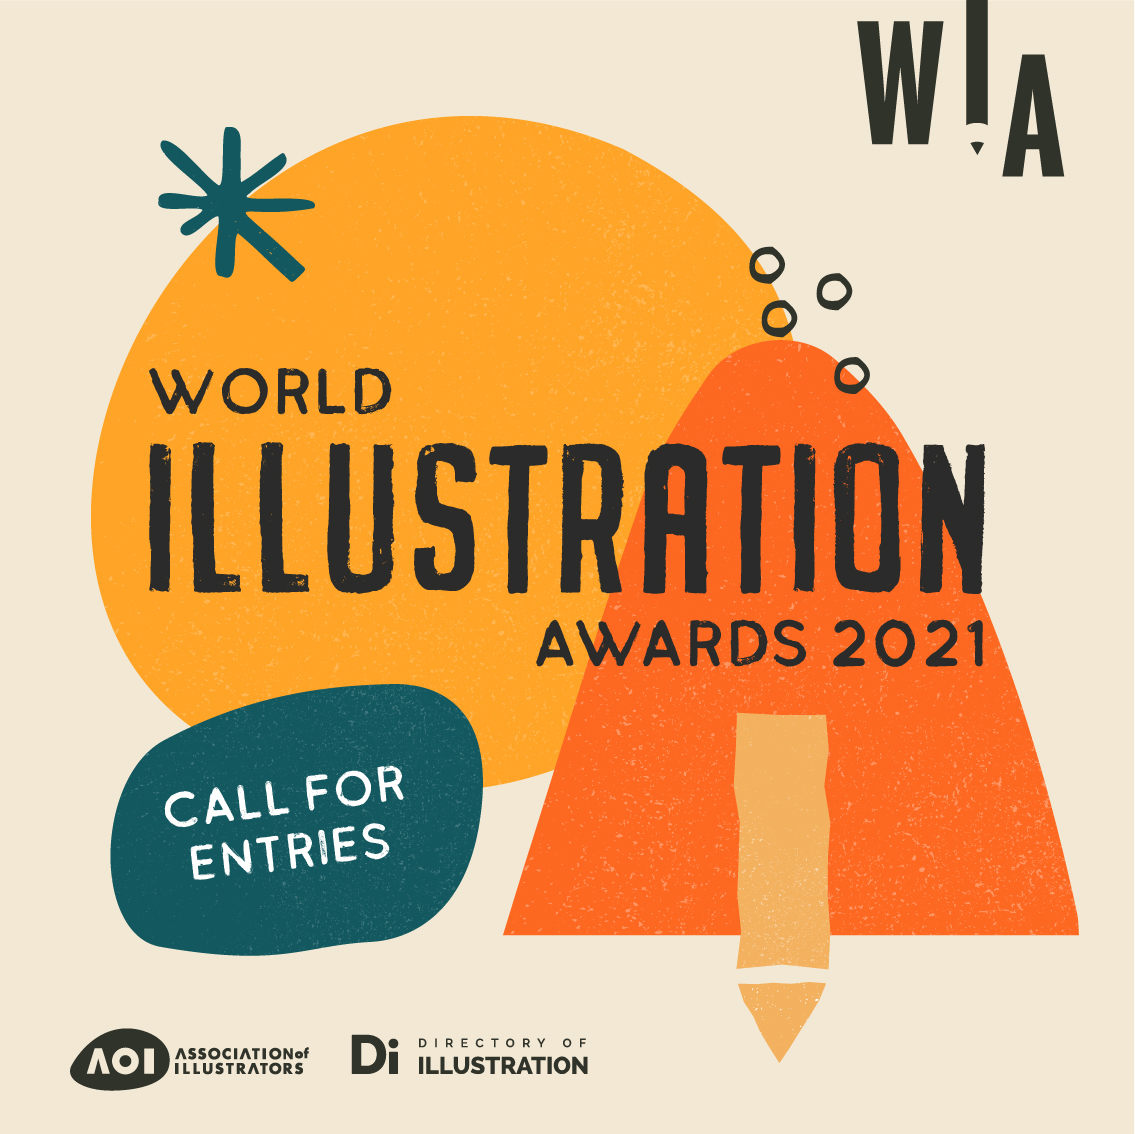 World Illustration Awards